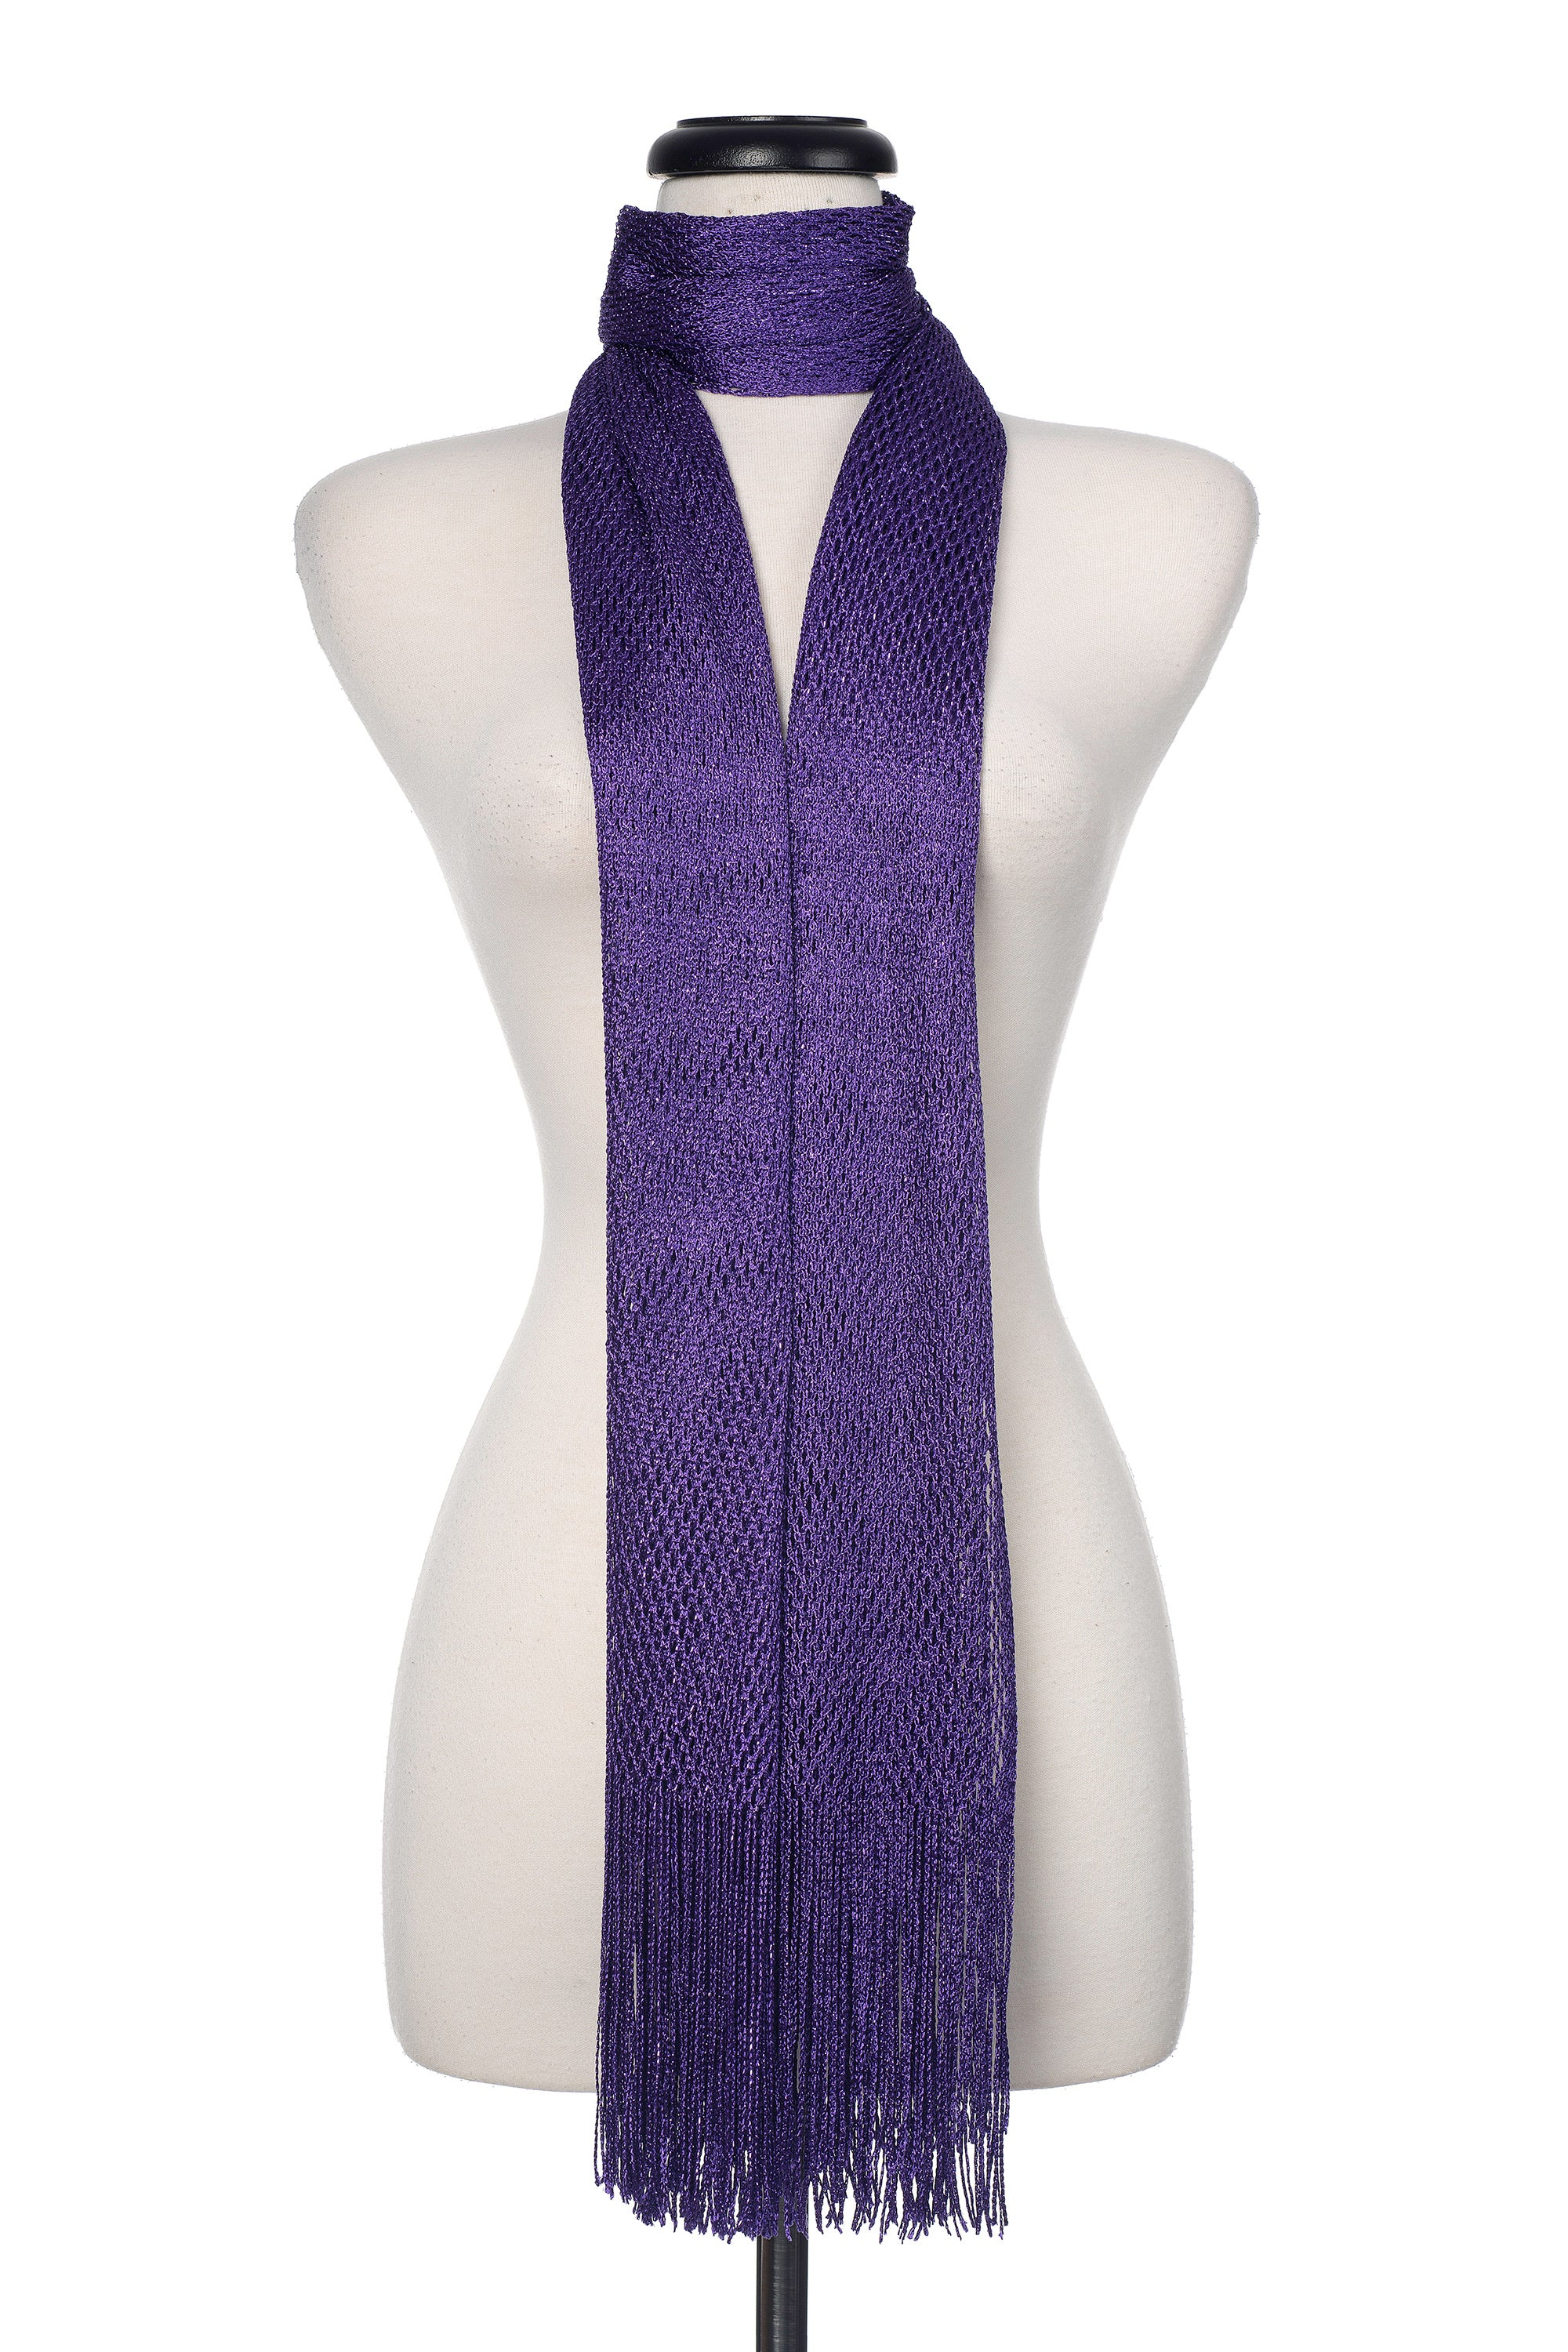 Type 4 Regal Appearance Scarf